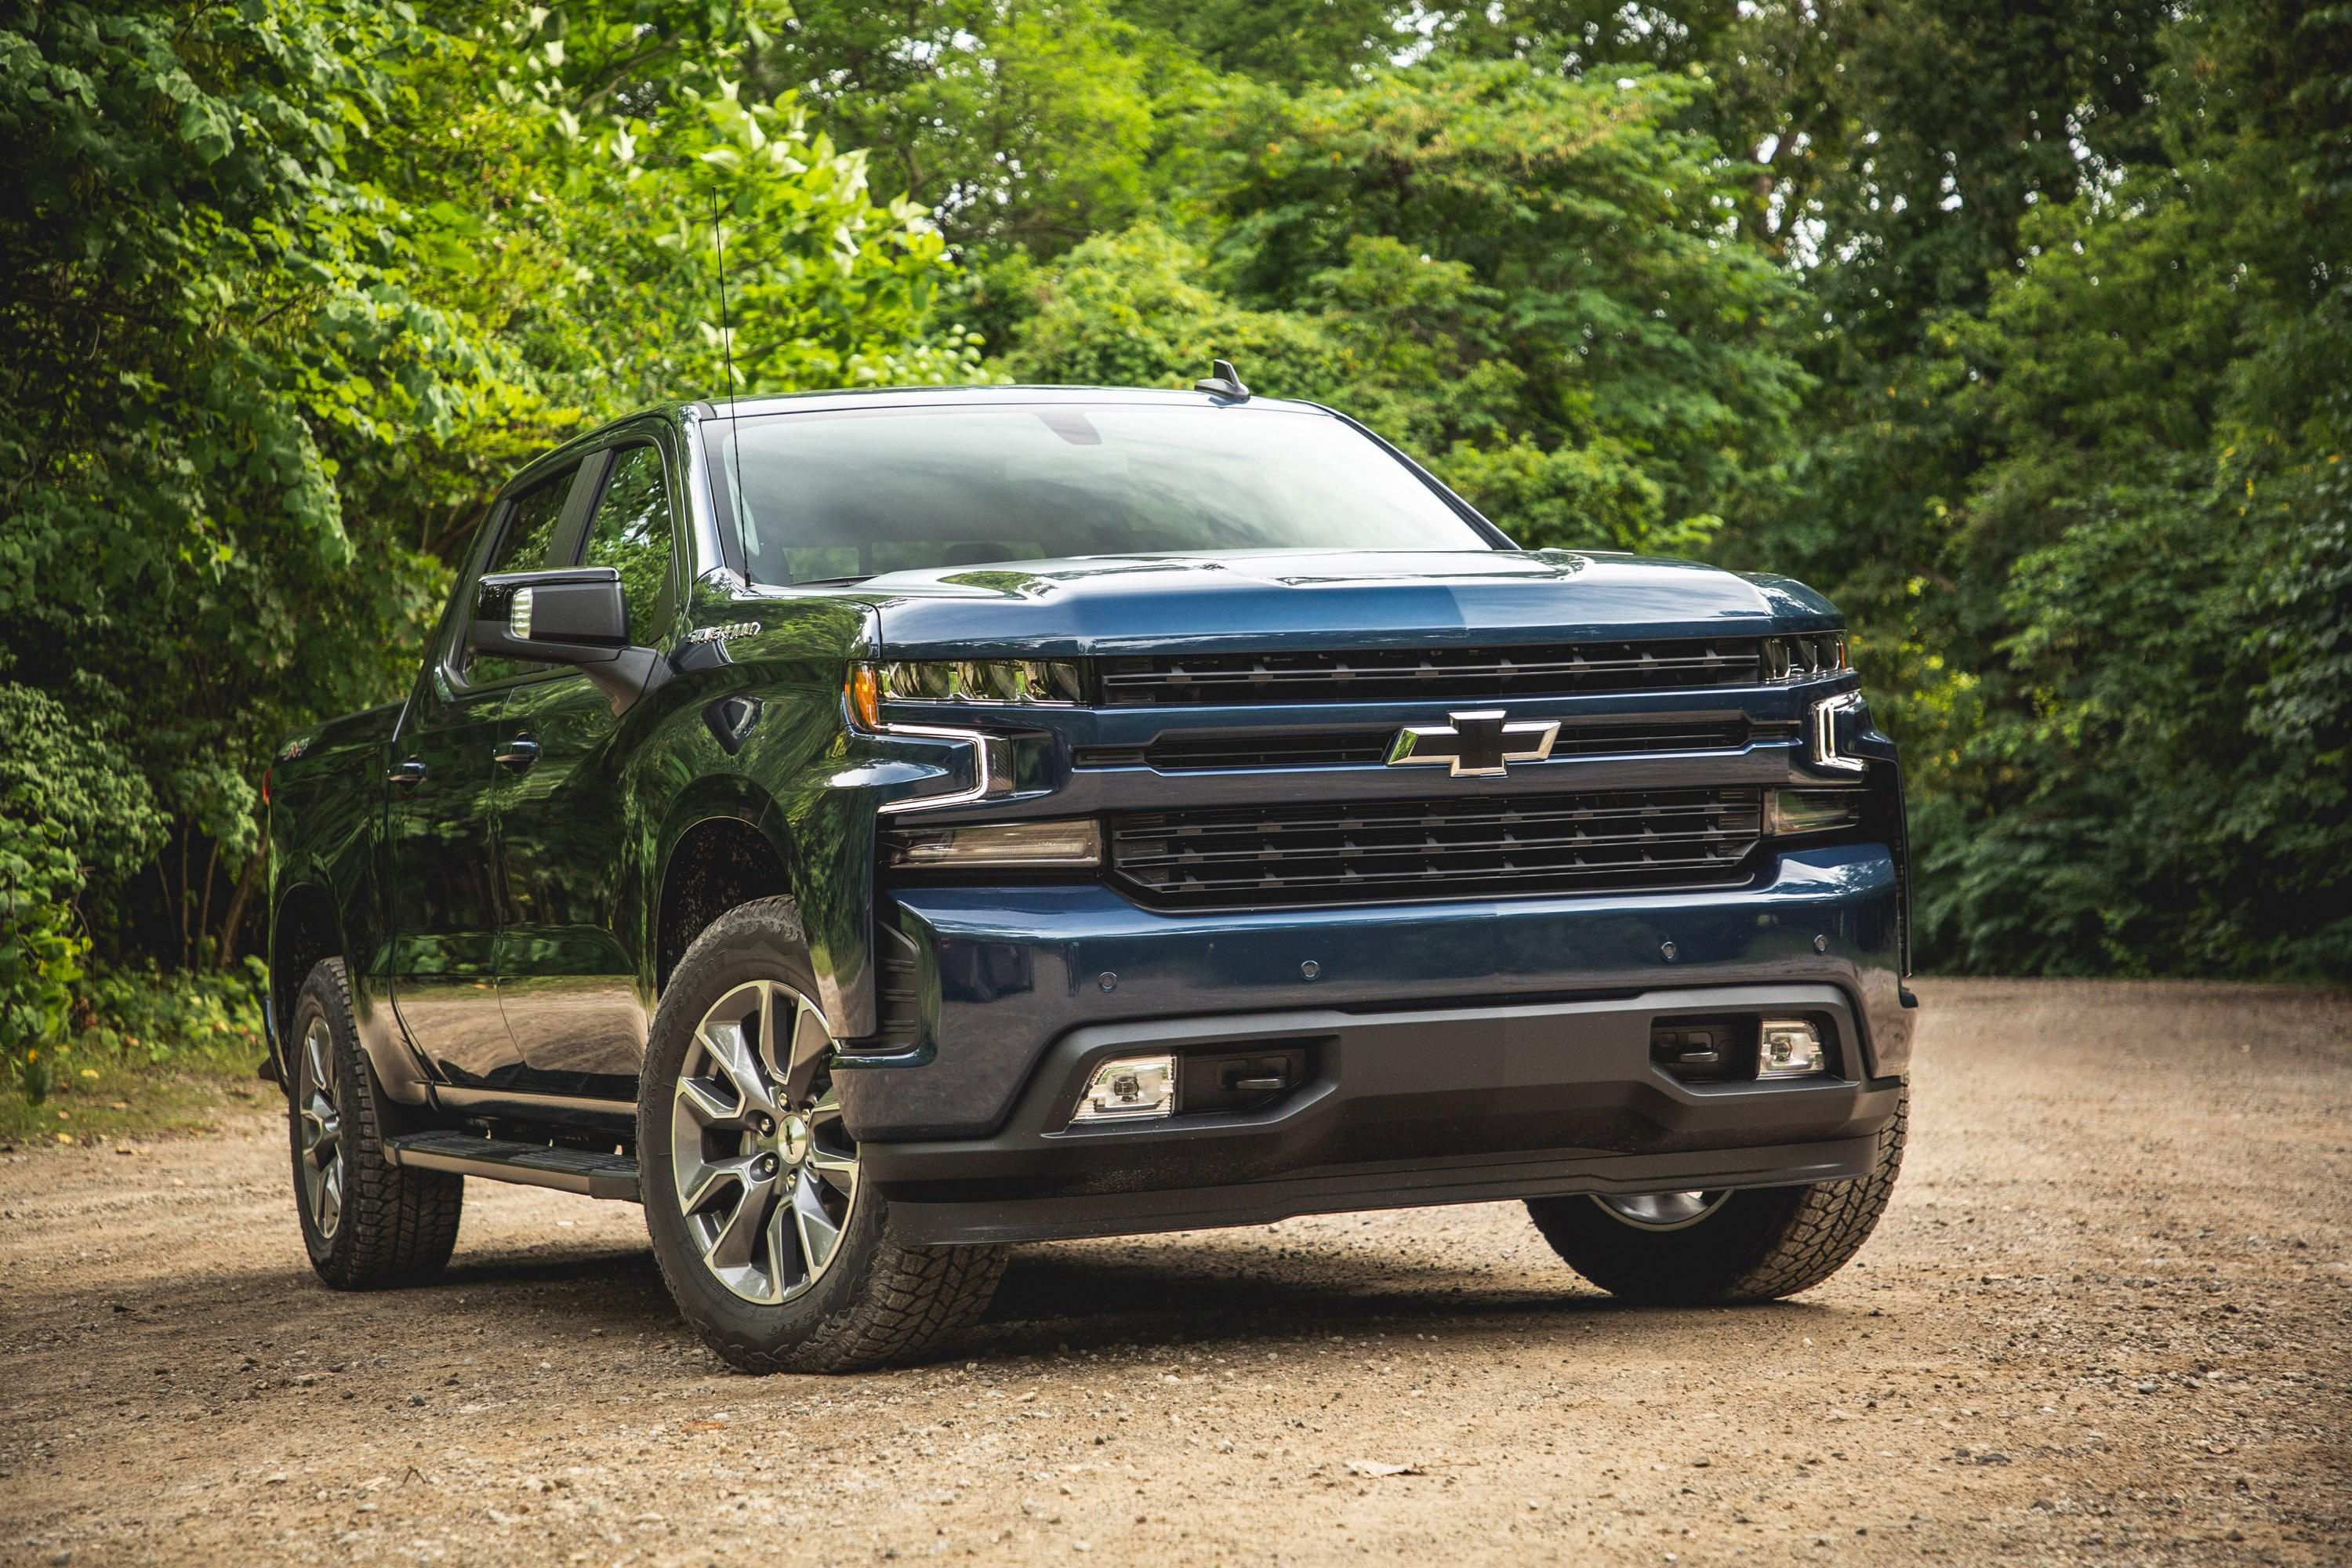 25 Concept of 2019 Chevrolet 1500 Mpg Wallpaper with 2019 Chevrolet 1500 Mpg